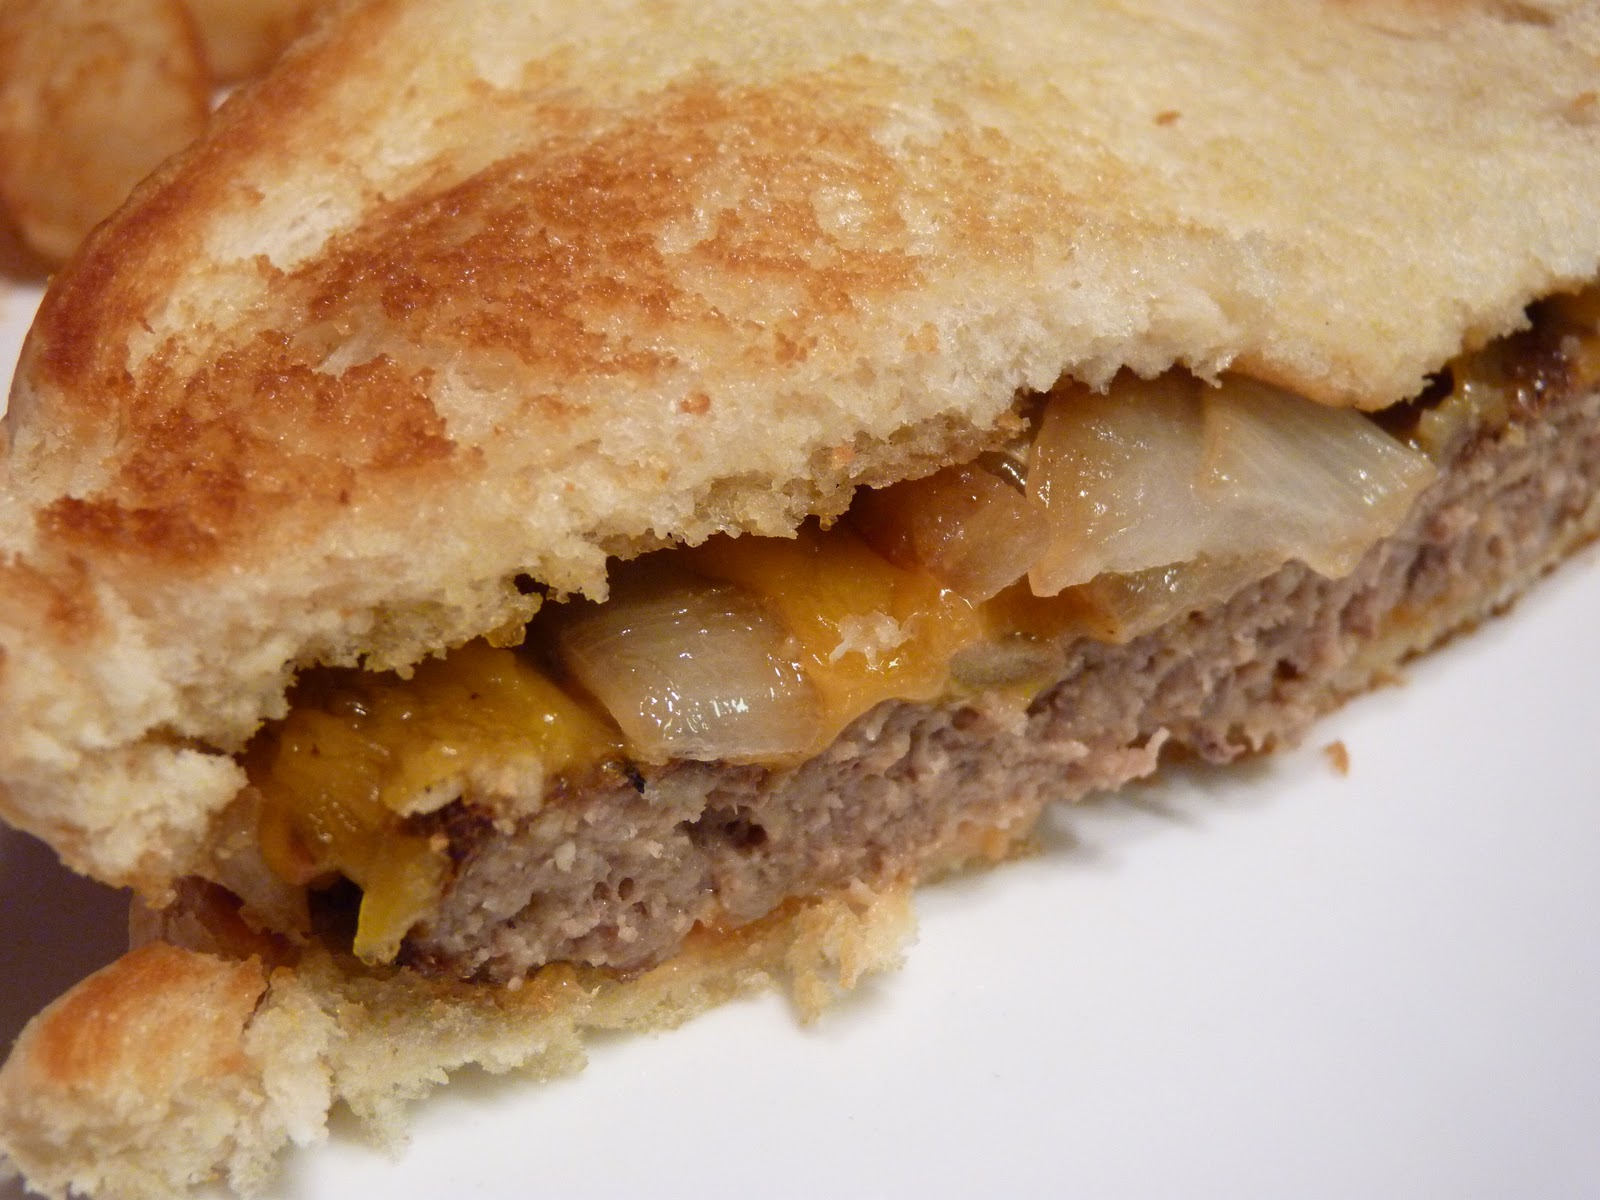 Fantastic Family Favorites: Meal Idea - Patty Melt